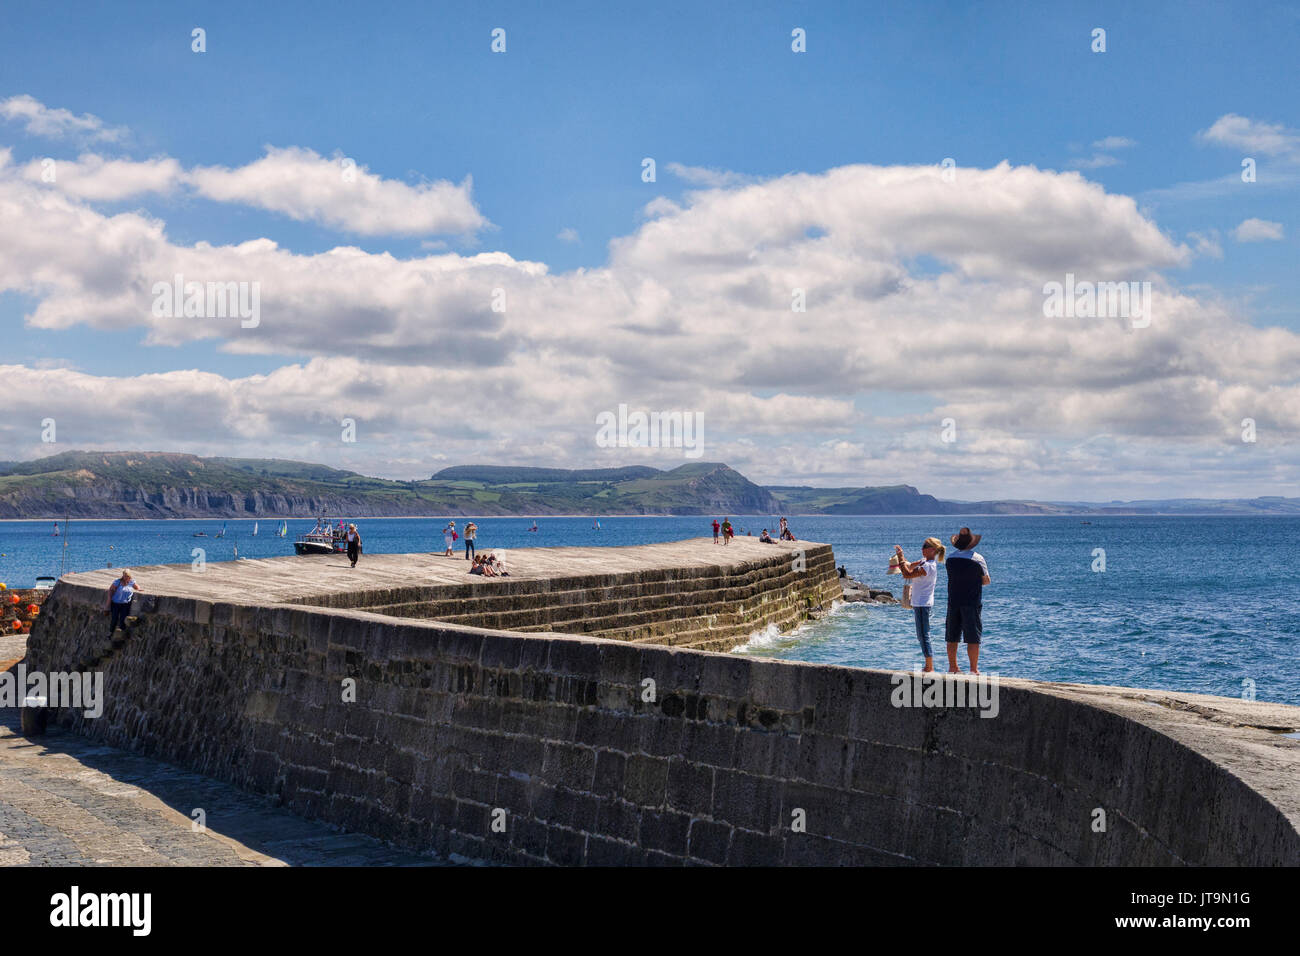 1 July 2017: Lyme Regis, Dorset, England, UK - Visitors strolling on The Cobb on a beautiful sunny summer day. - Stock Image